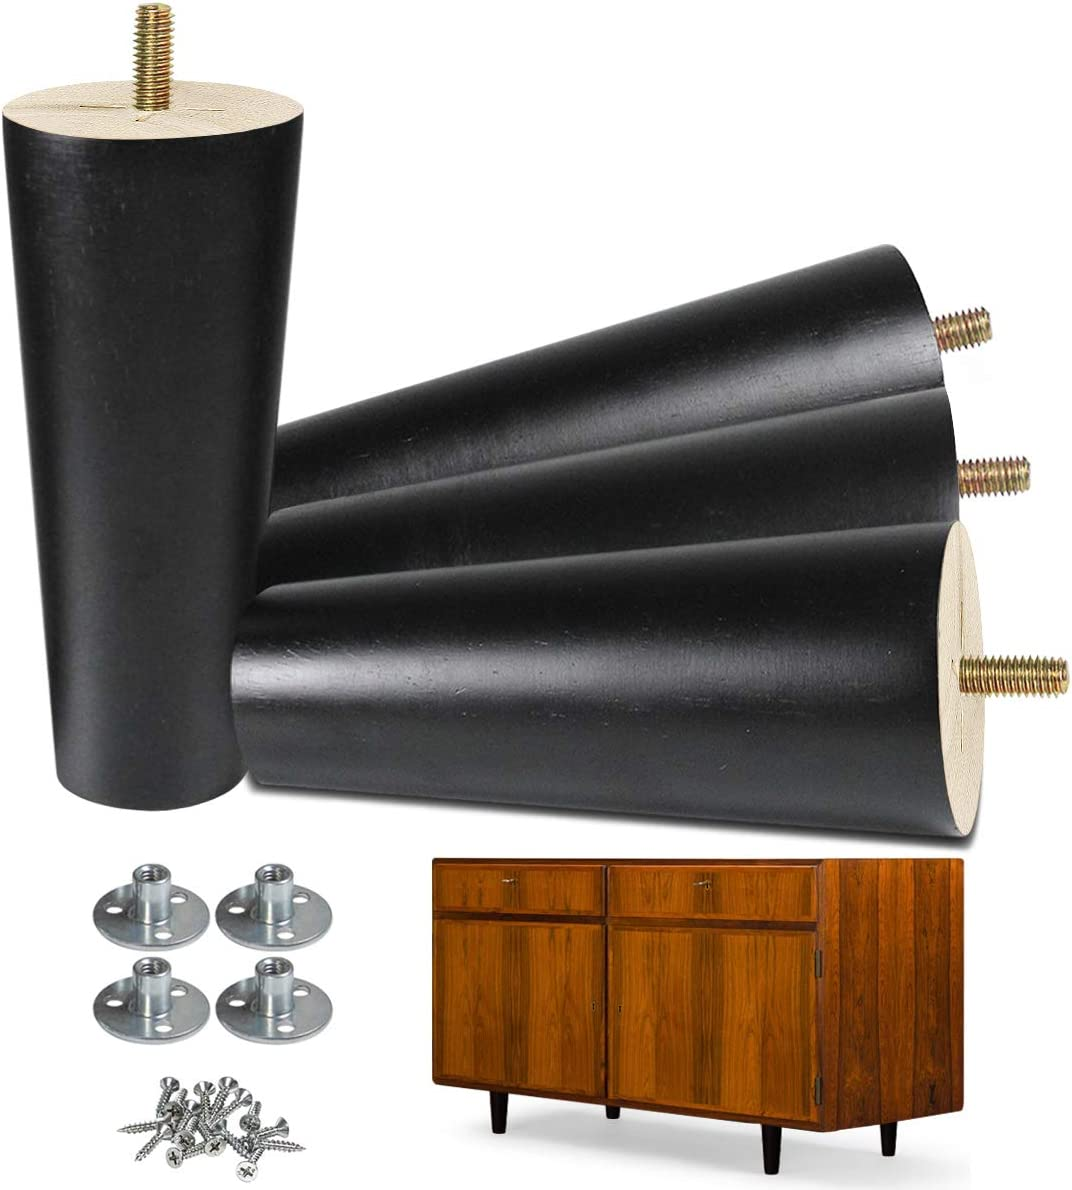 AORYVIC Furniture Legs 6 inch Black Wood Legs Pack of 4